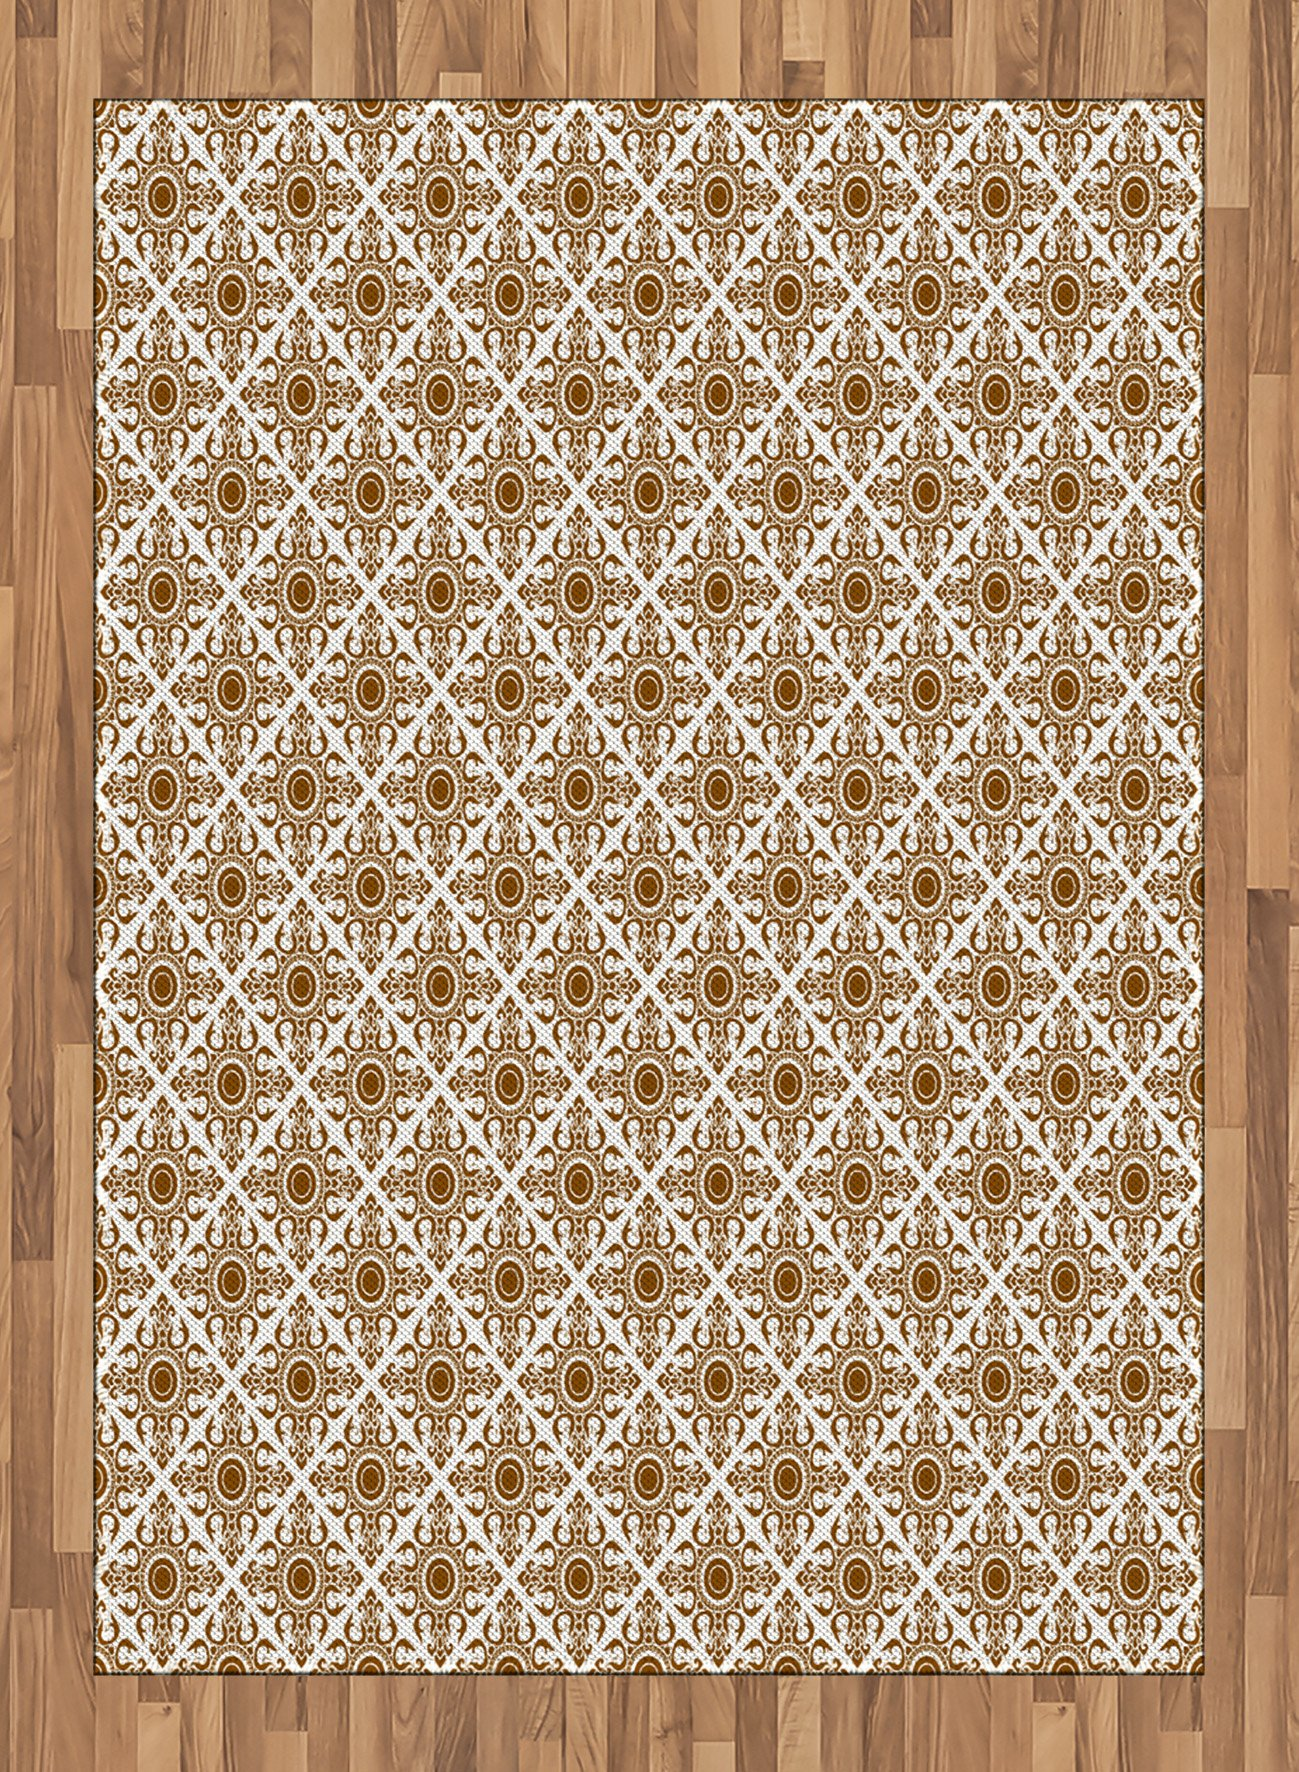 Ethnic Area Rug by Ambesonne, Thai Mosaic Art Culture Stylized Abstract Lines Dots Pattern Folk Asian Design, Flat Woven Accent Rug for Living Room Bedroom Dining Room, 5.2 x 7.5 FT, Redwood White